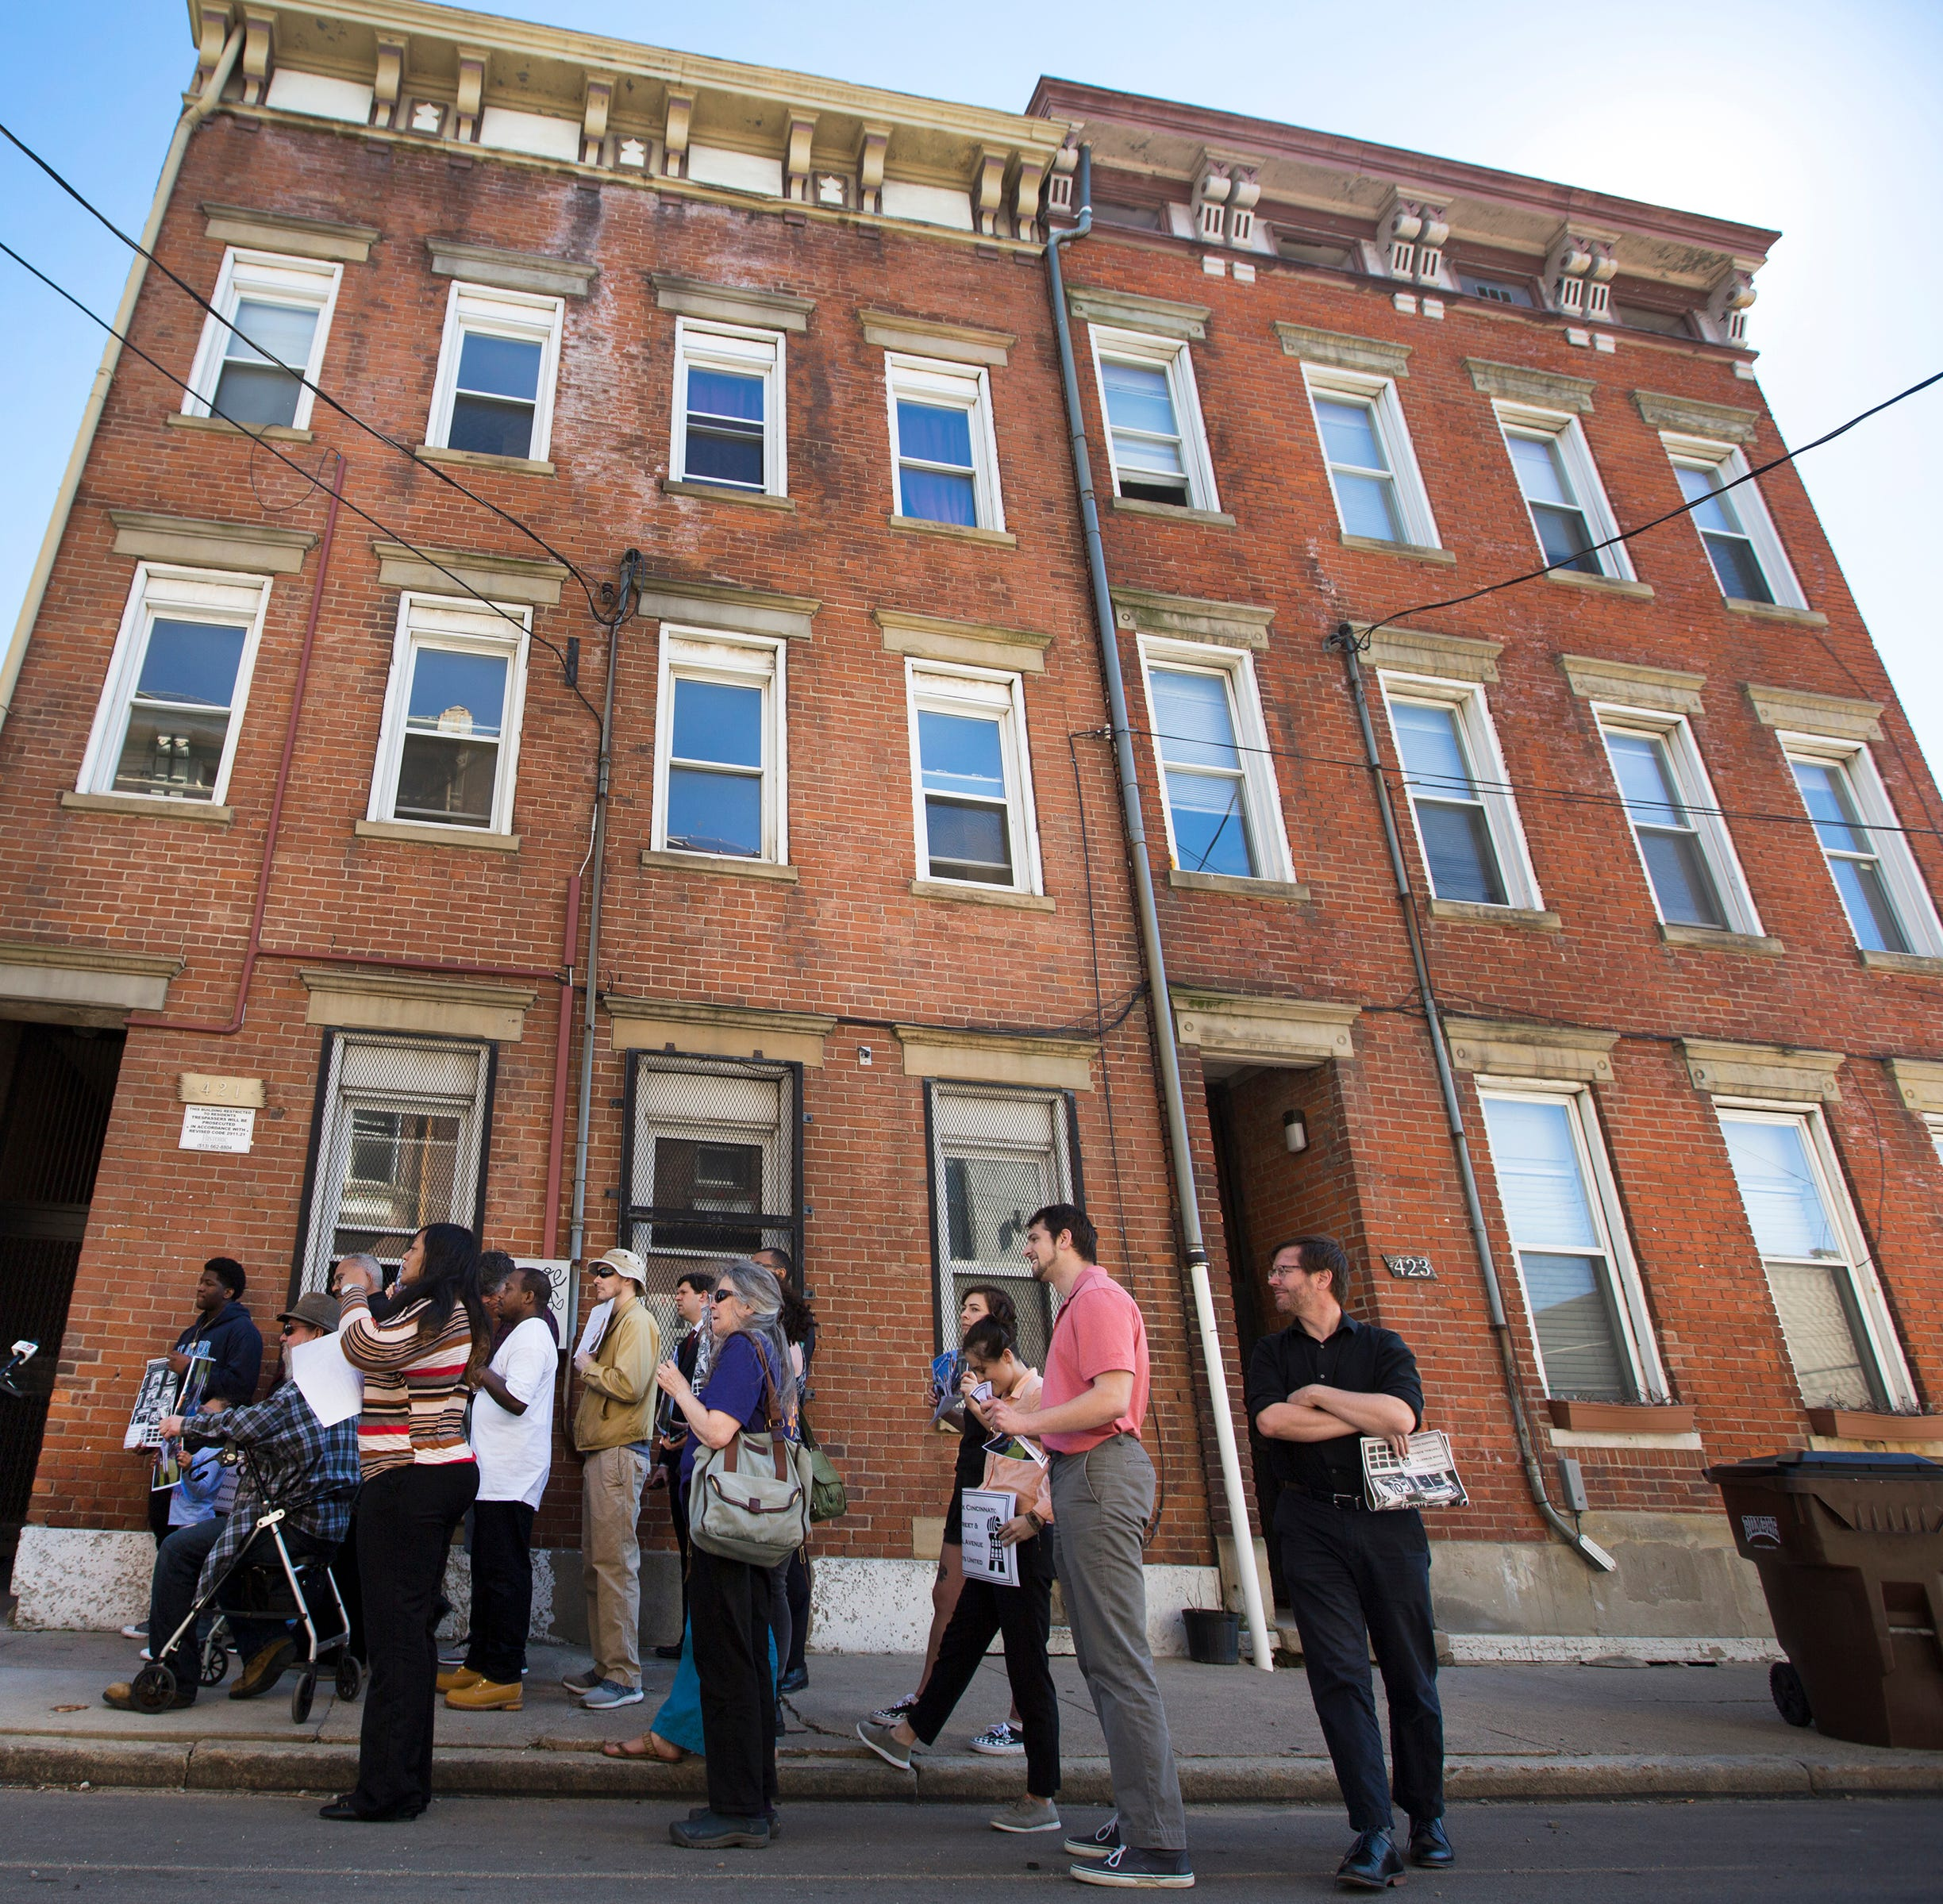 Fight Back Cincinnati: Wade street and Central Avenue Tenants United hold a press conference in front of an apartment building on Wade Street in the West end. The building overlooks the new FC Cincinnati stadium. Tenants, including 99-year-old Mary Page, are facing displacement.